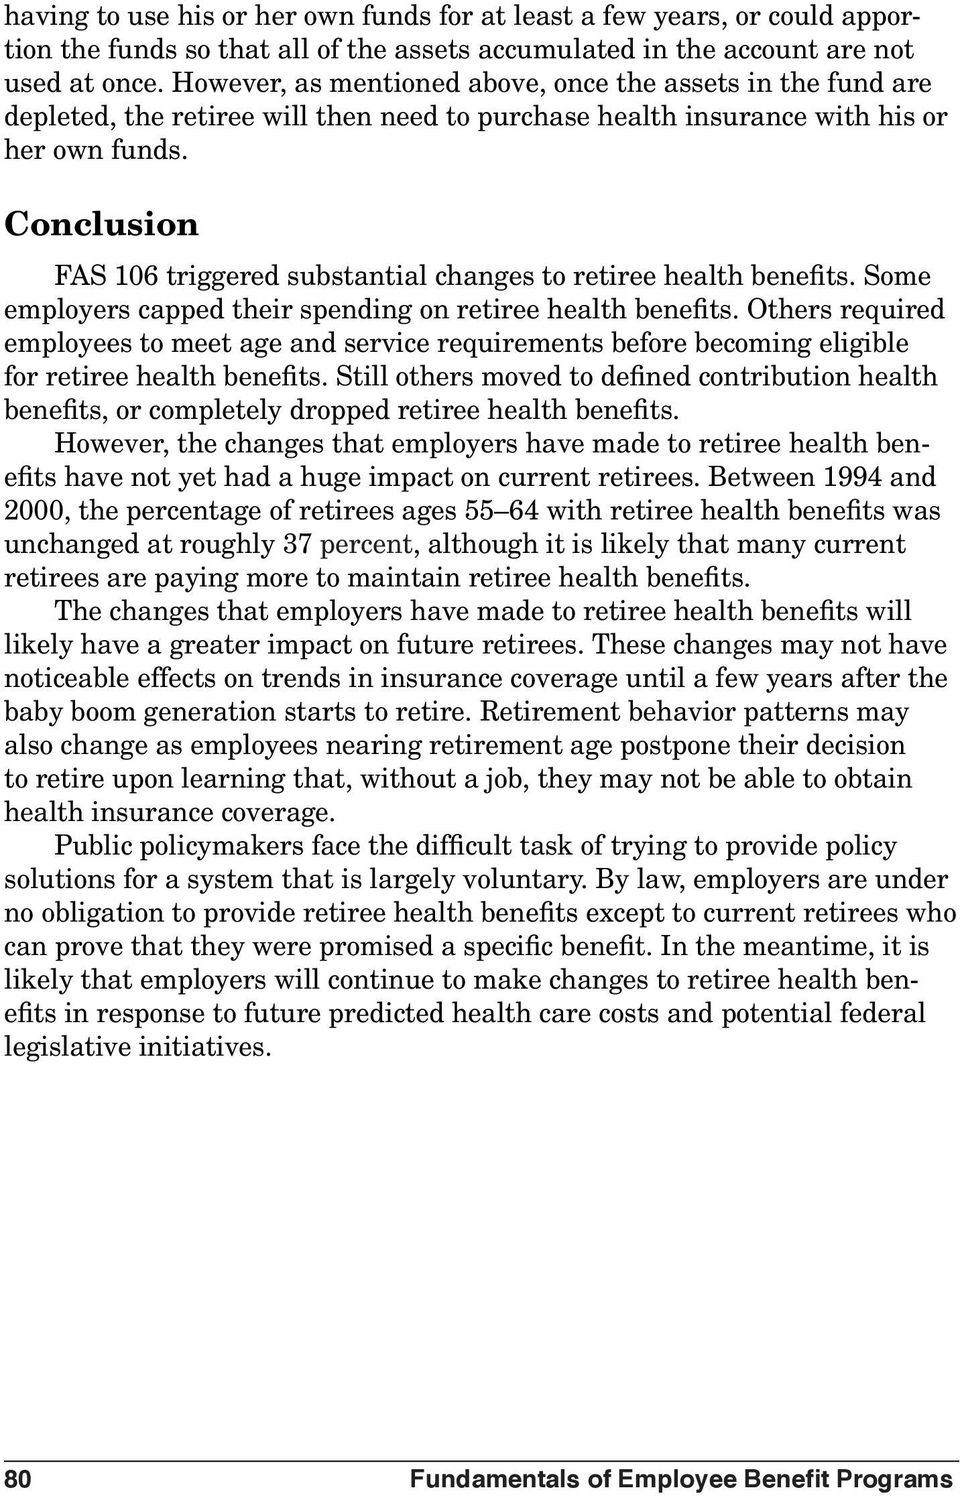 Conclusion FAS 106 triggered substantial changes to retiree health benefits. Some employers capped their spending on retiree health benefits.